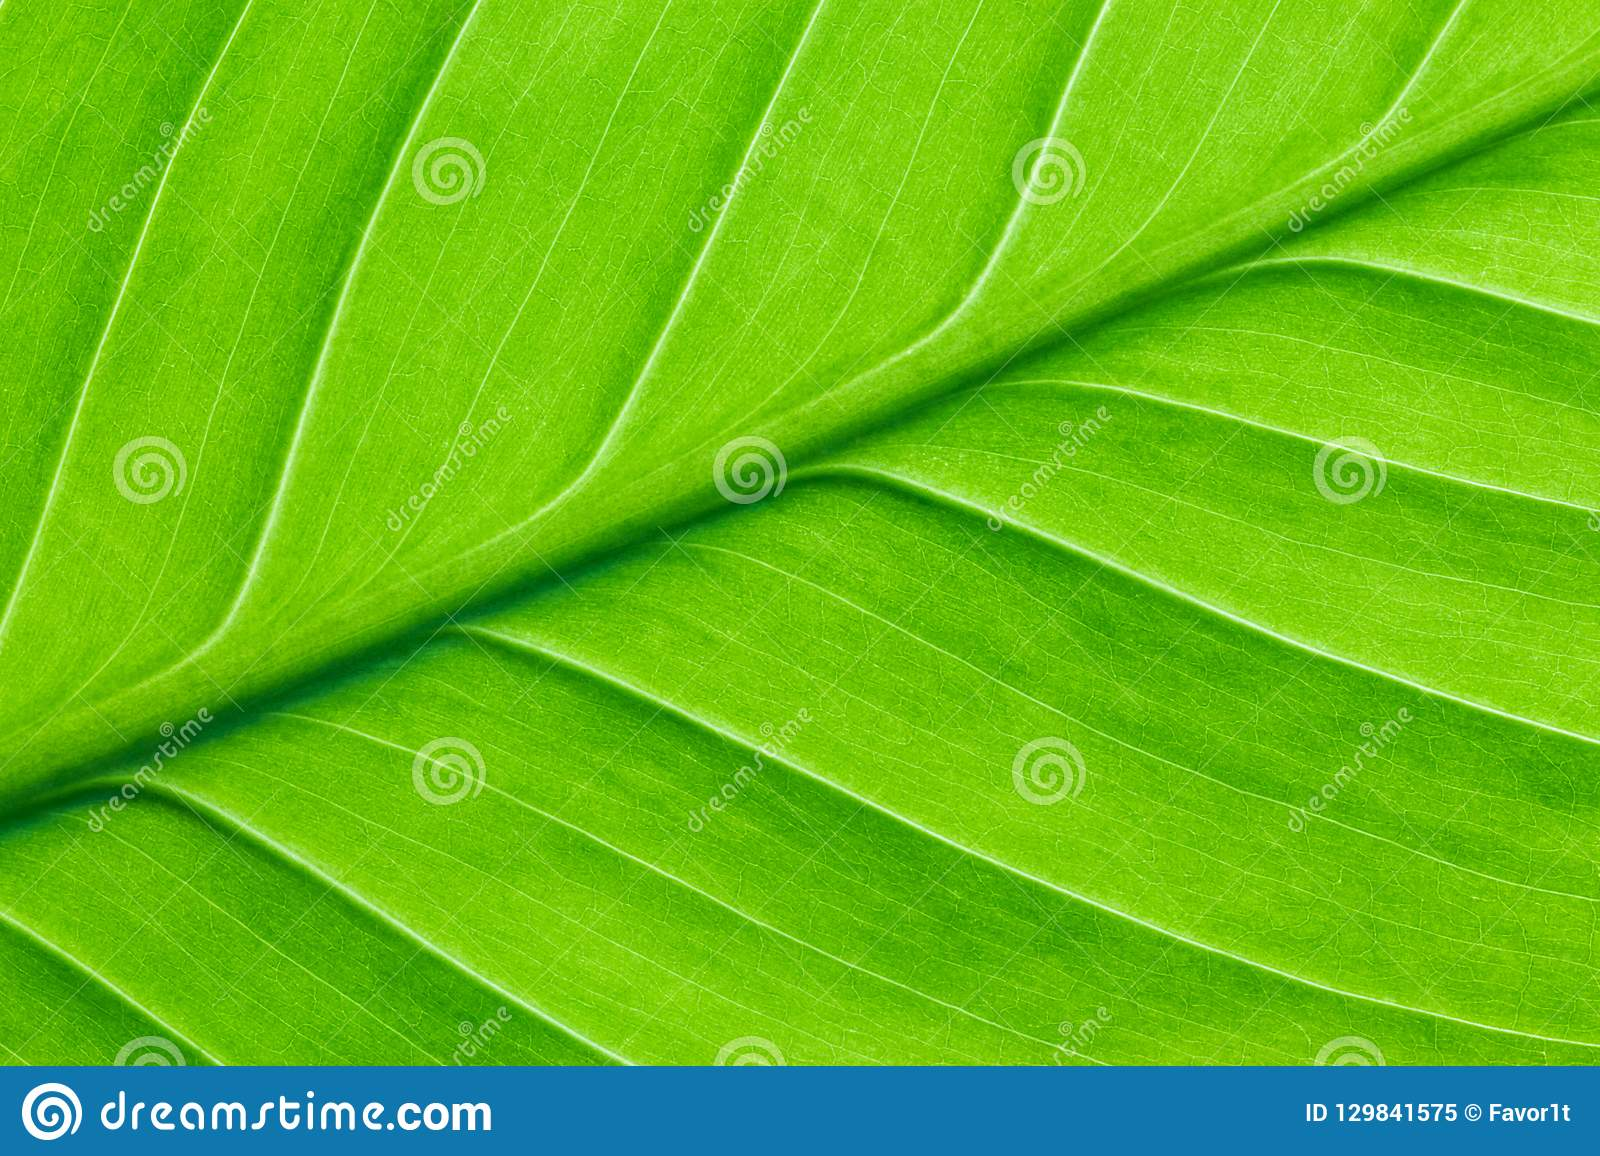 Bright green leaf of a plant close up